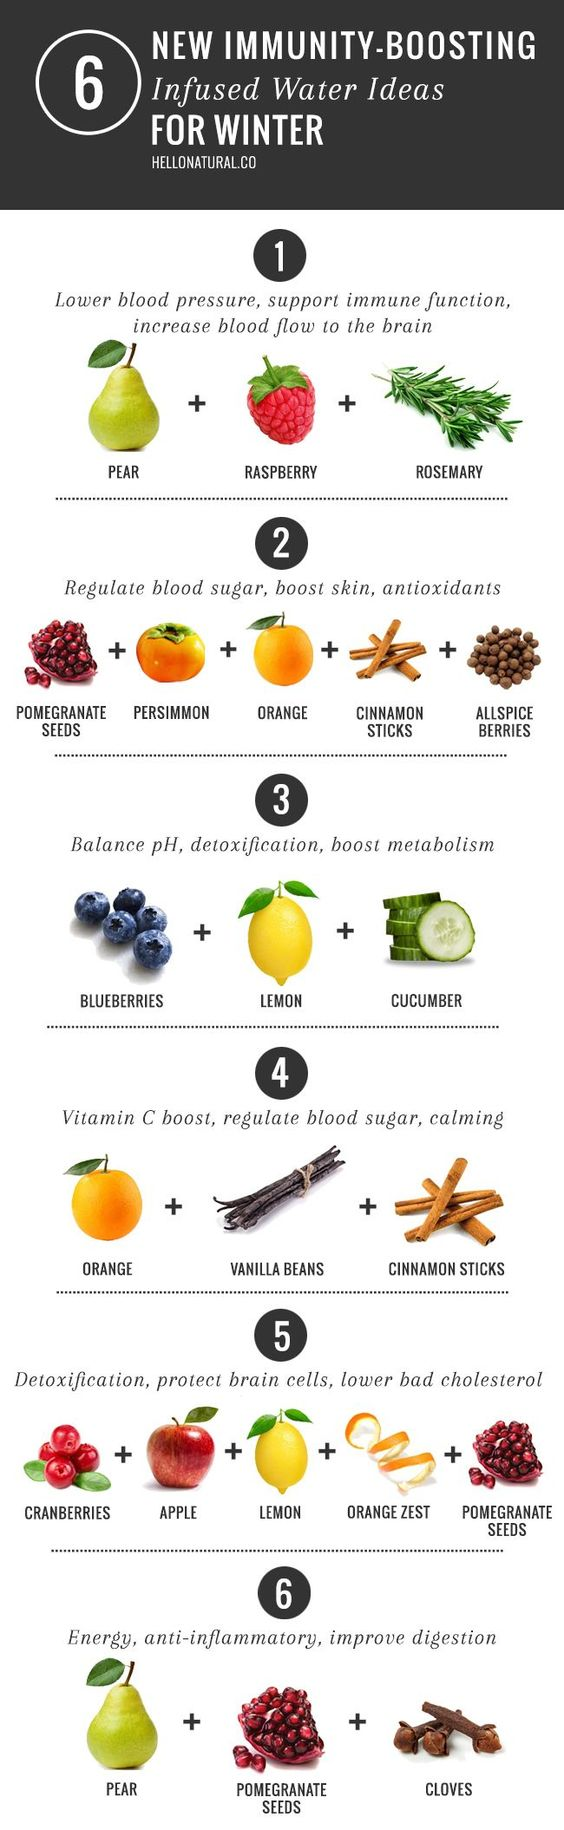 6 Immune-Boosting Infused Water Ideas for Winter   HelloNatural.co